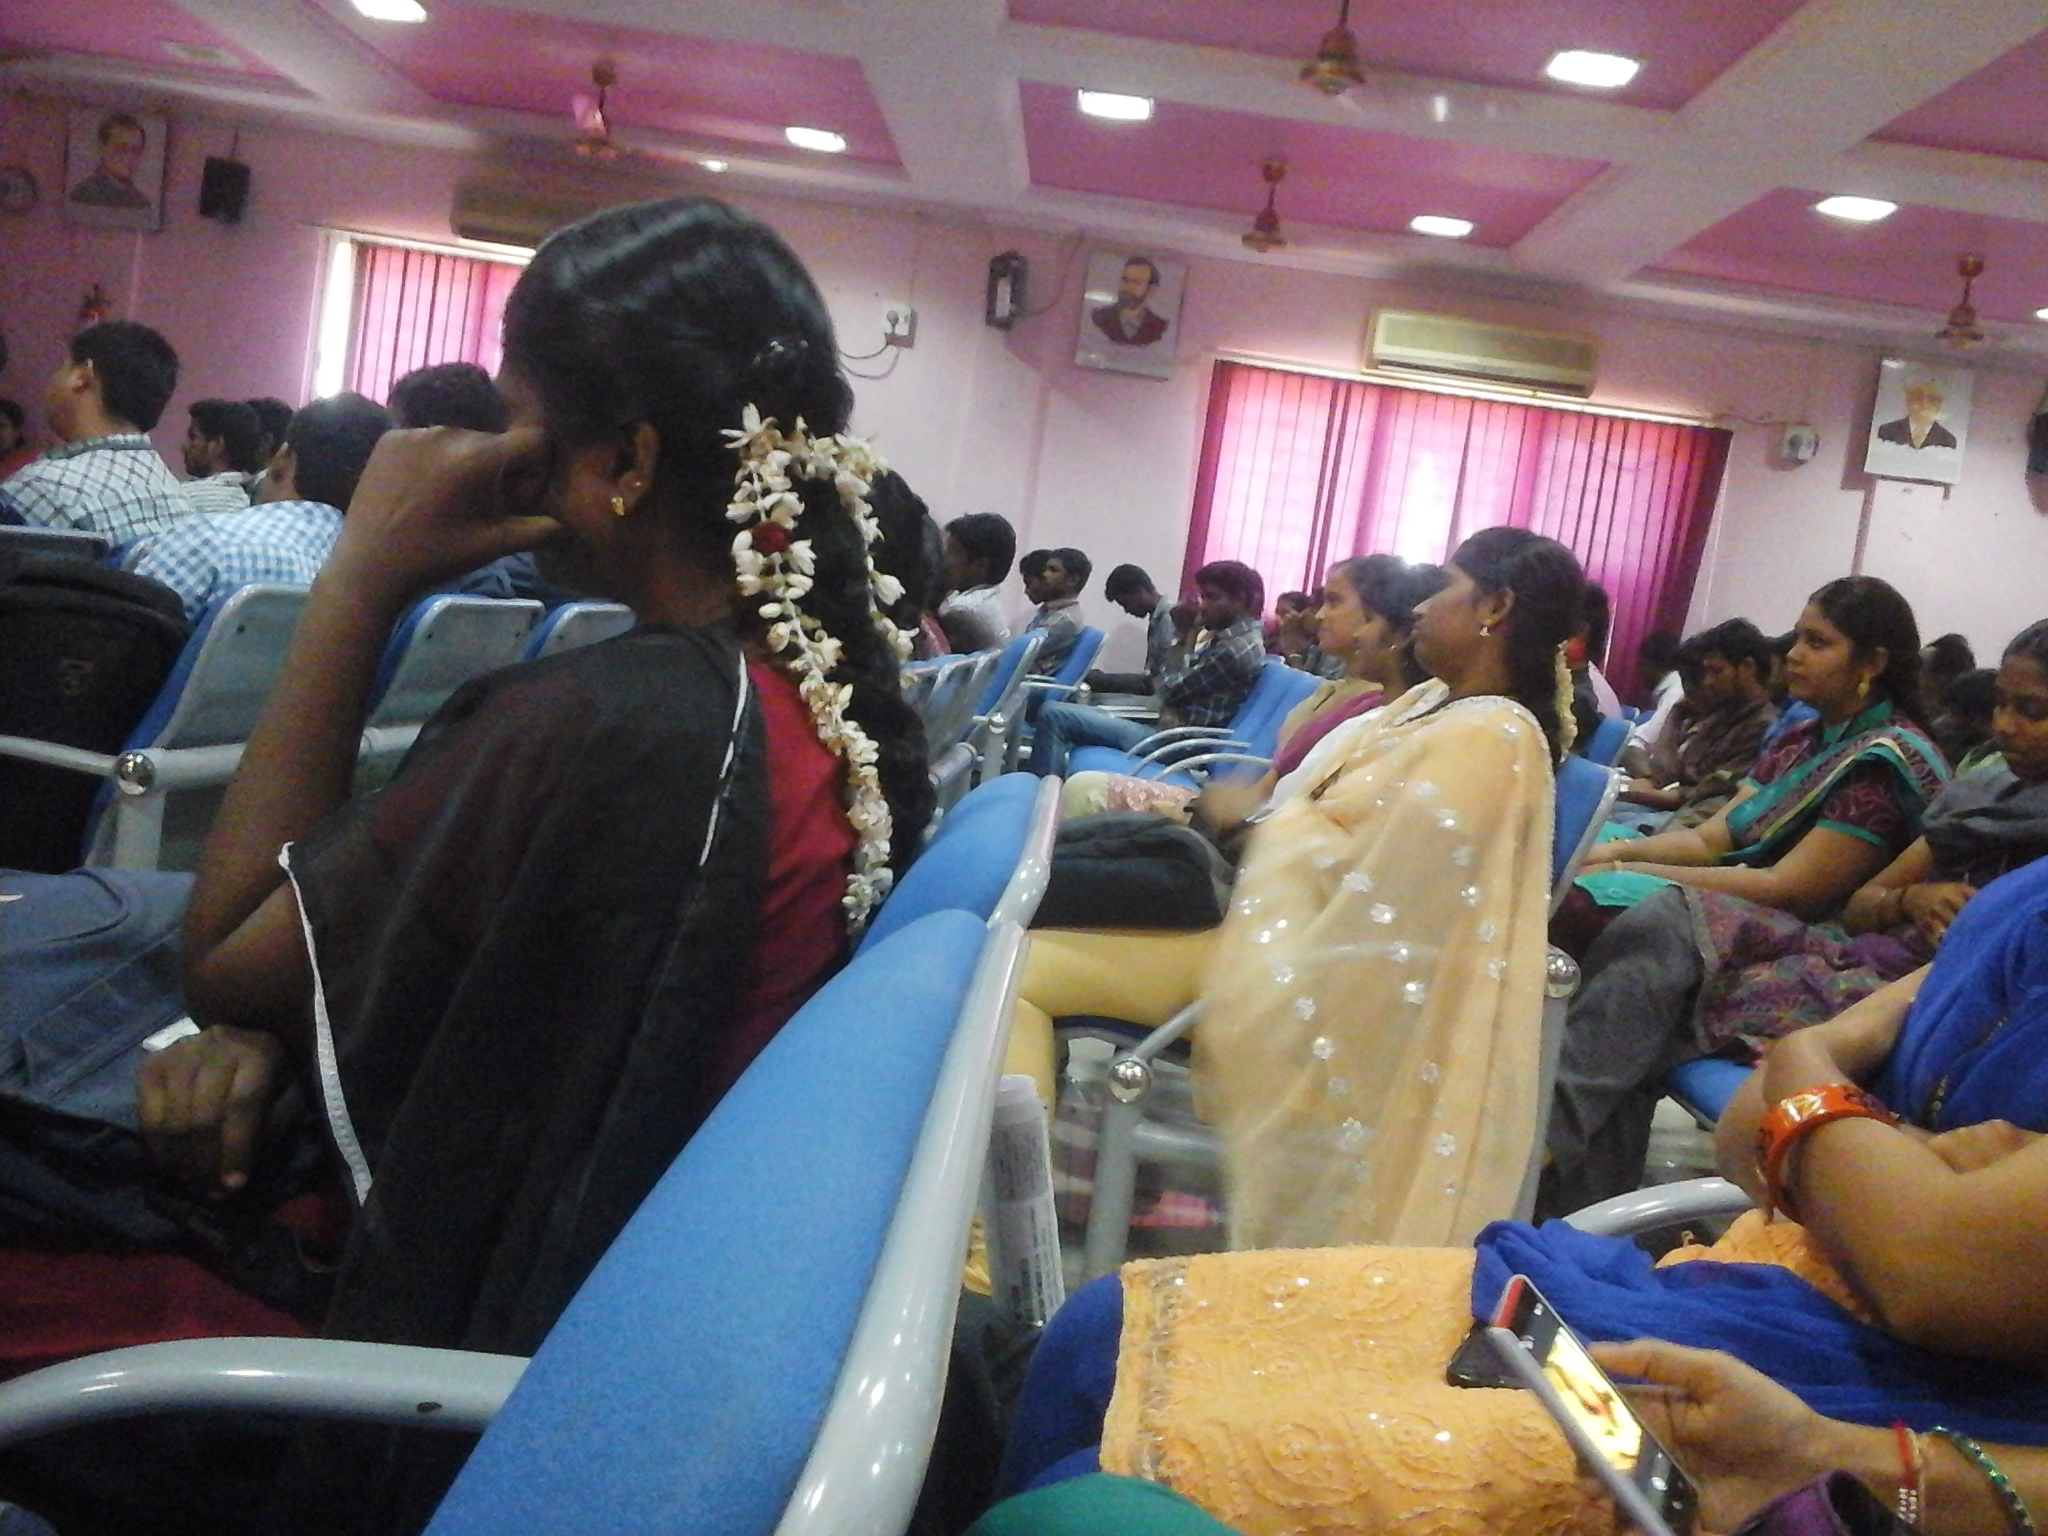 Mgr College Courses Fee Cut Off Ranking Admission Placement Careers360 Com